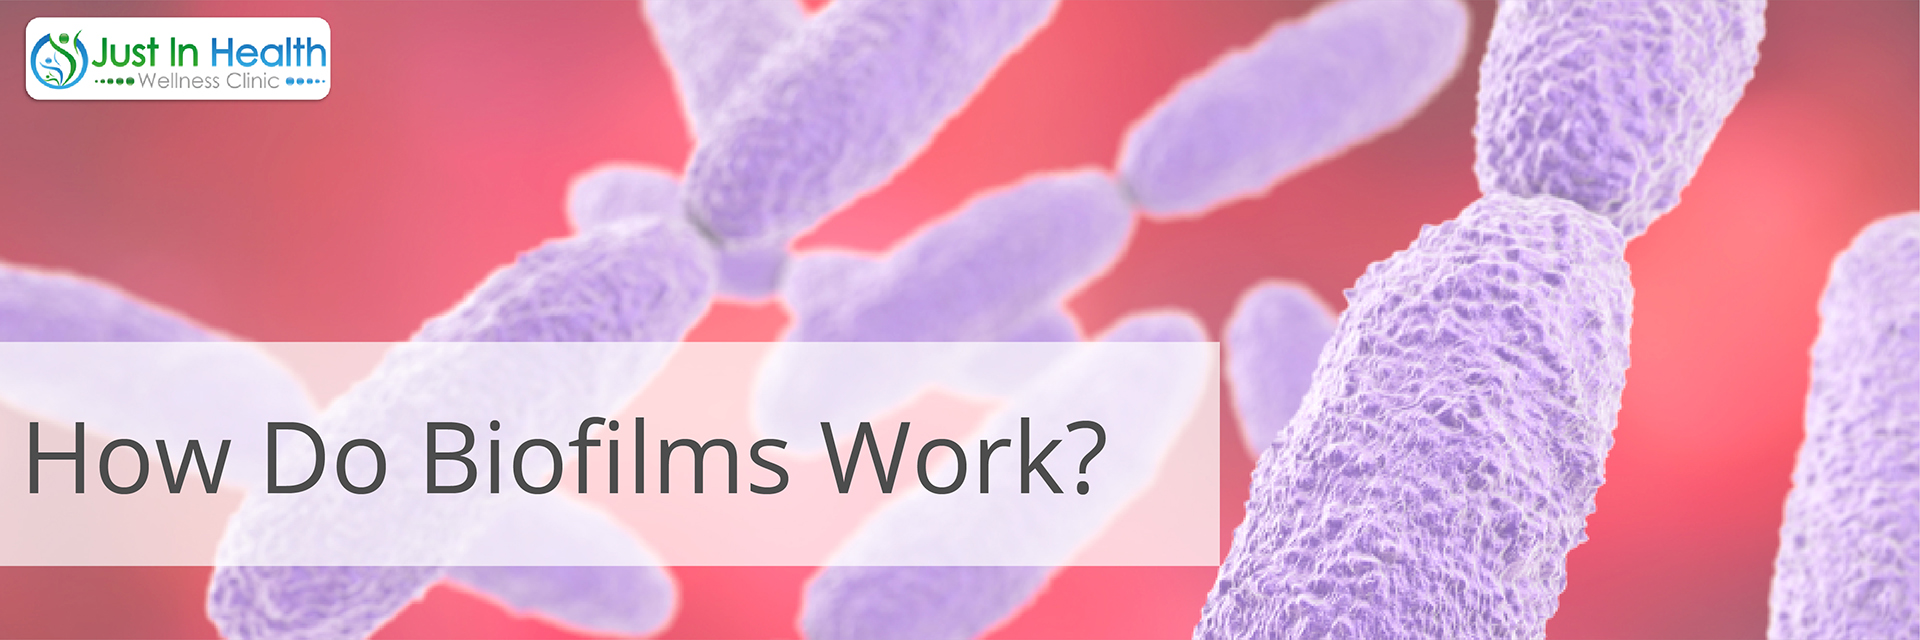 How do biofilms work?